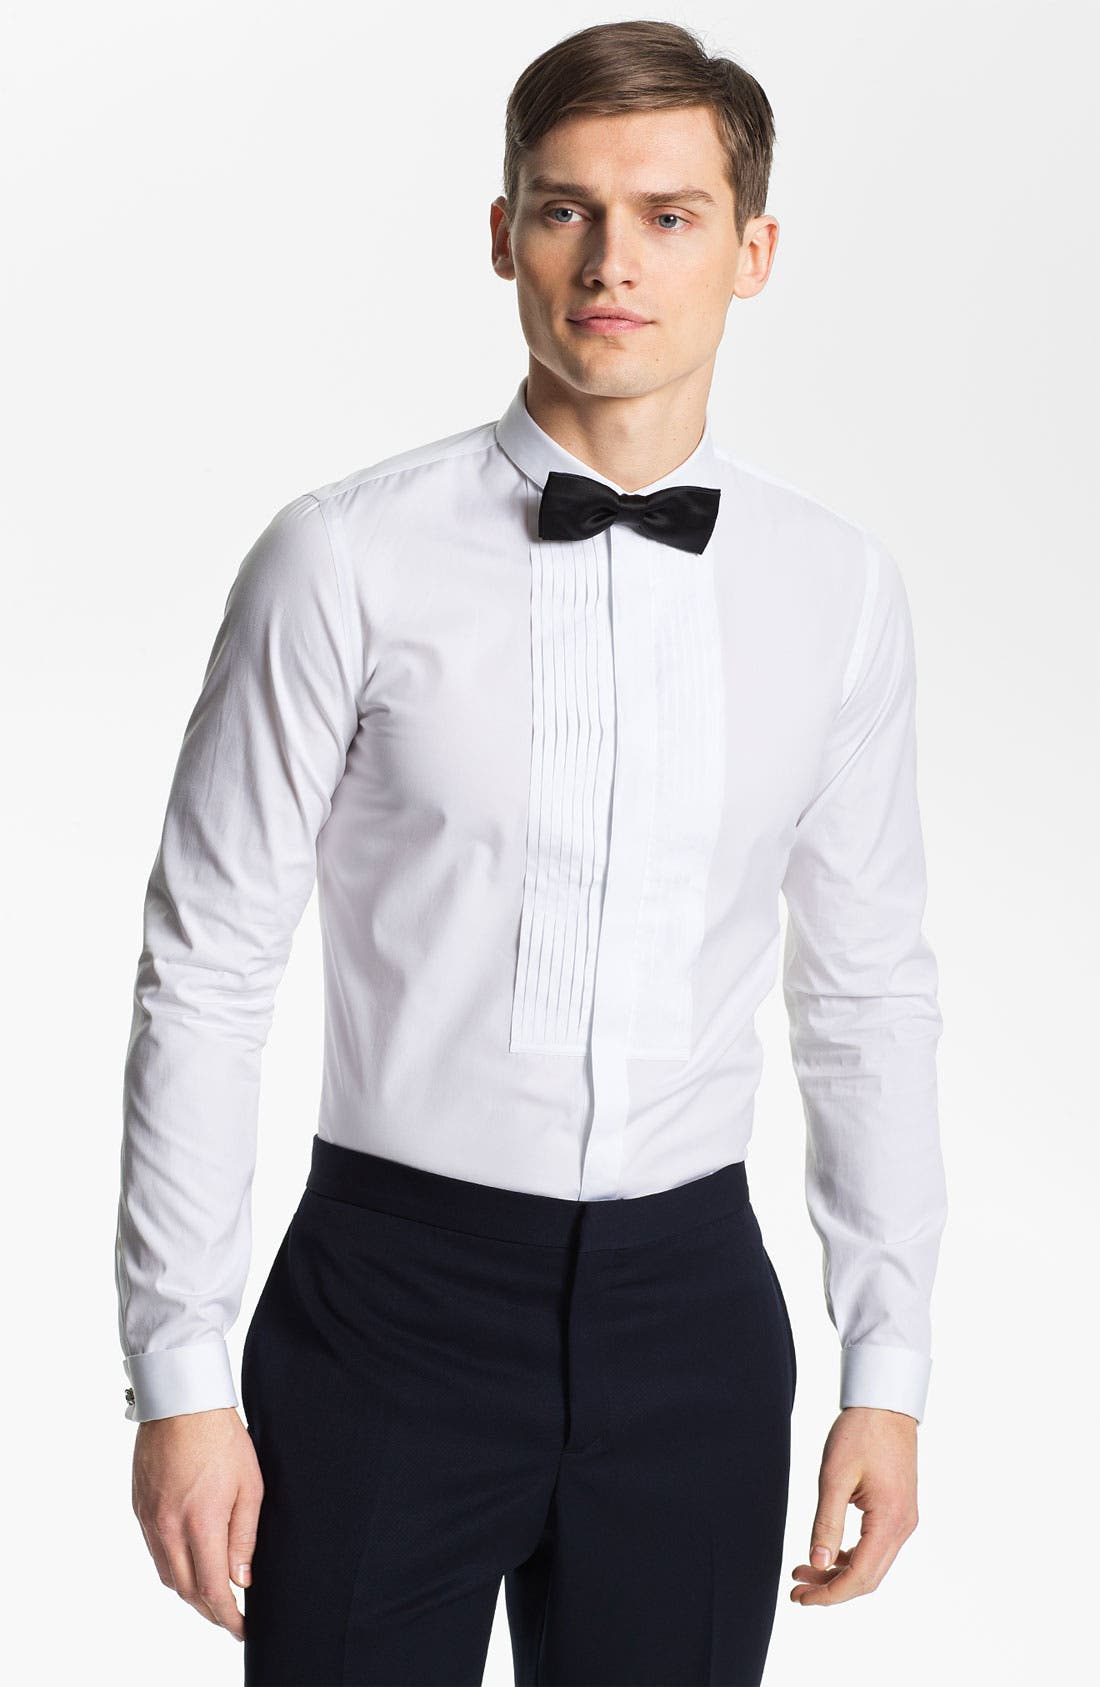 Alternate Image 1 Selected - Burberry Prorsum Cotton Poplin Tuxedo Shirt